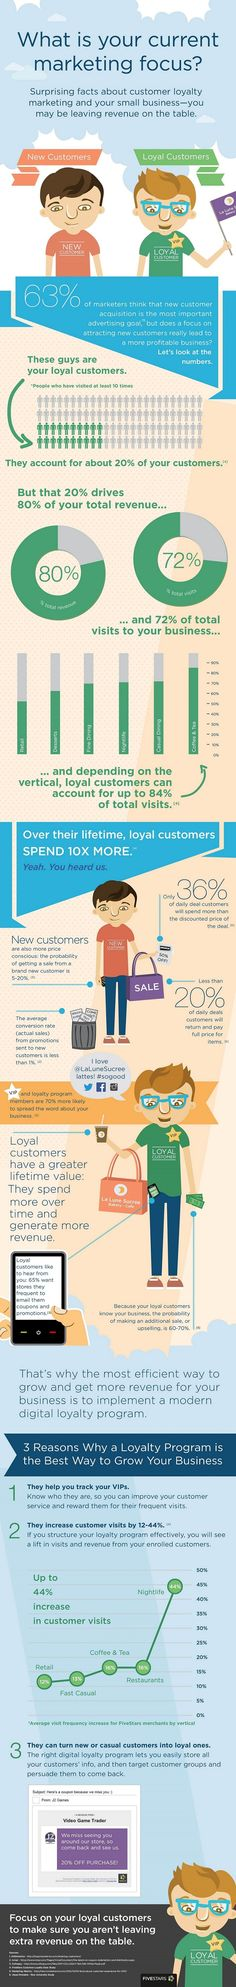 Customer Relationships - Surprising Facts About Customer Loyalty Marketing [Infographic] : MarketingProfs Article Loyalty Marketing, Business Marketing, Inbound Marketing, Content Marketing, Internet Marketing, Online Marketing, Social Media Marketing, Digital Marketing, Marketing Program